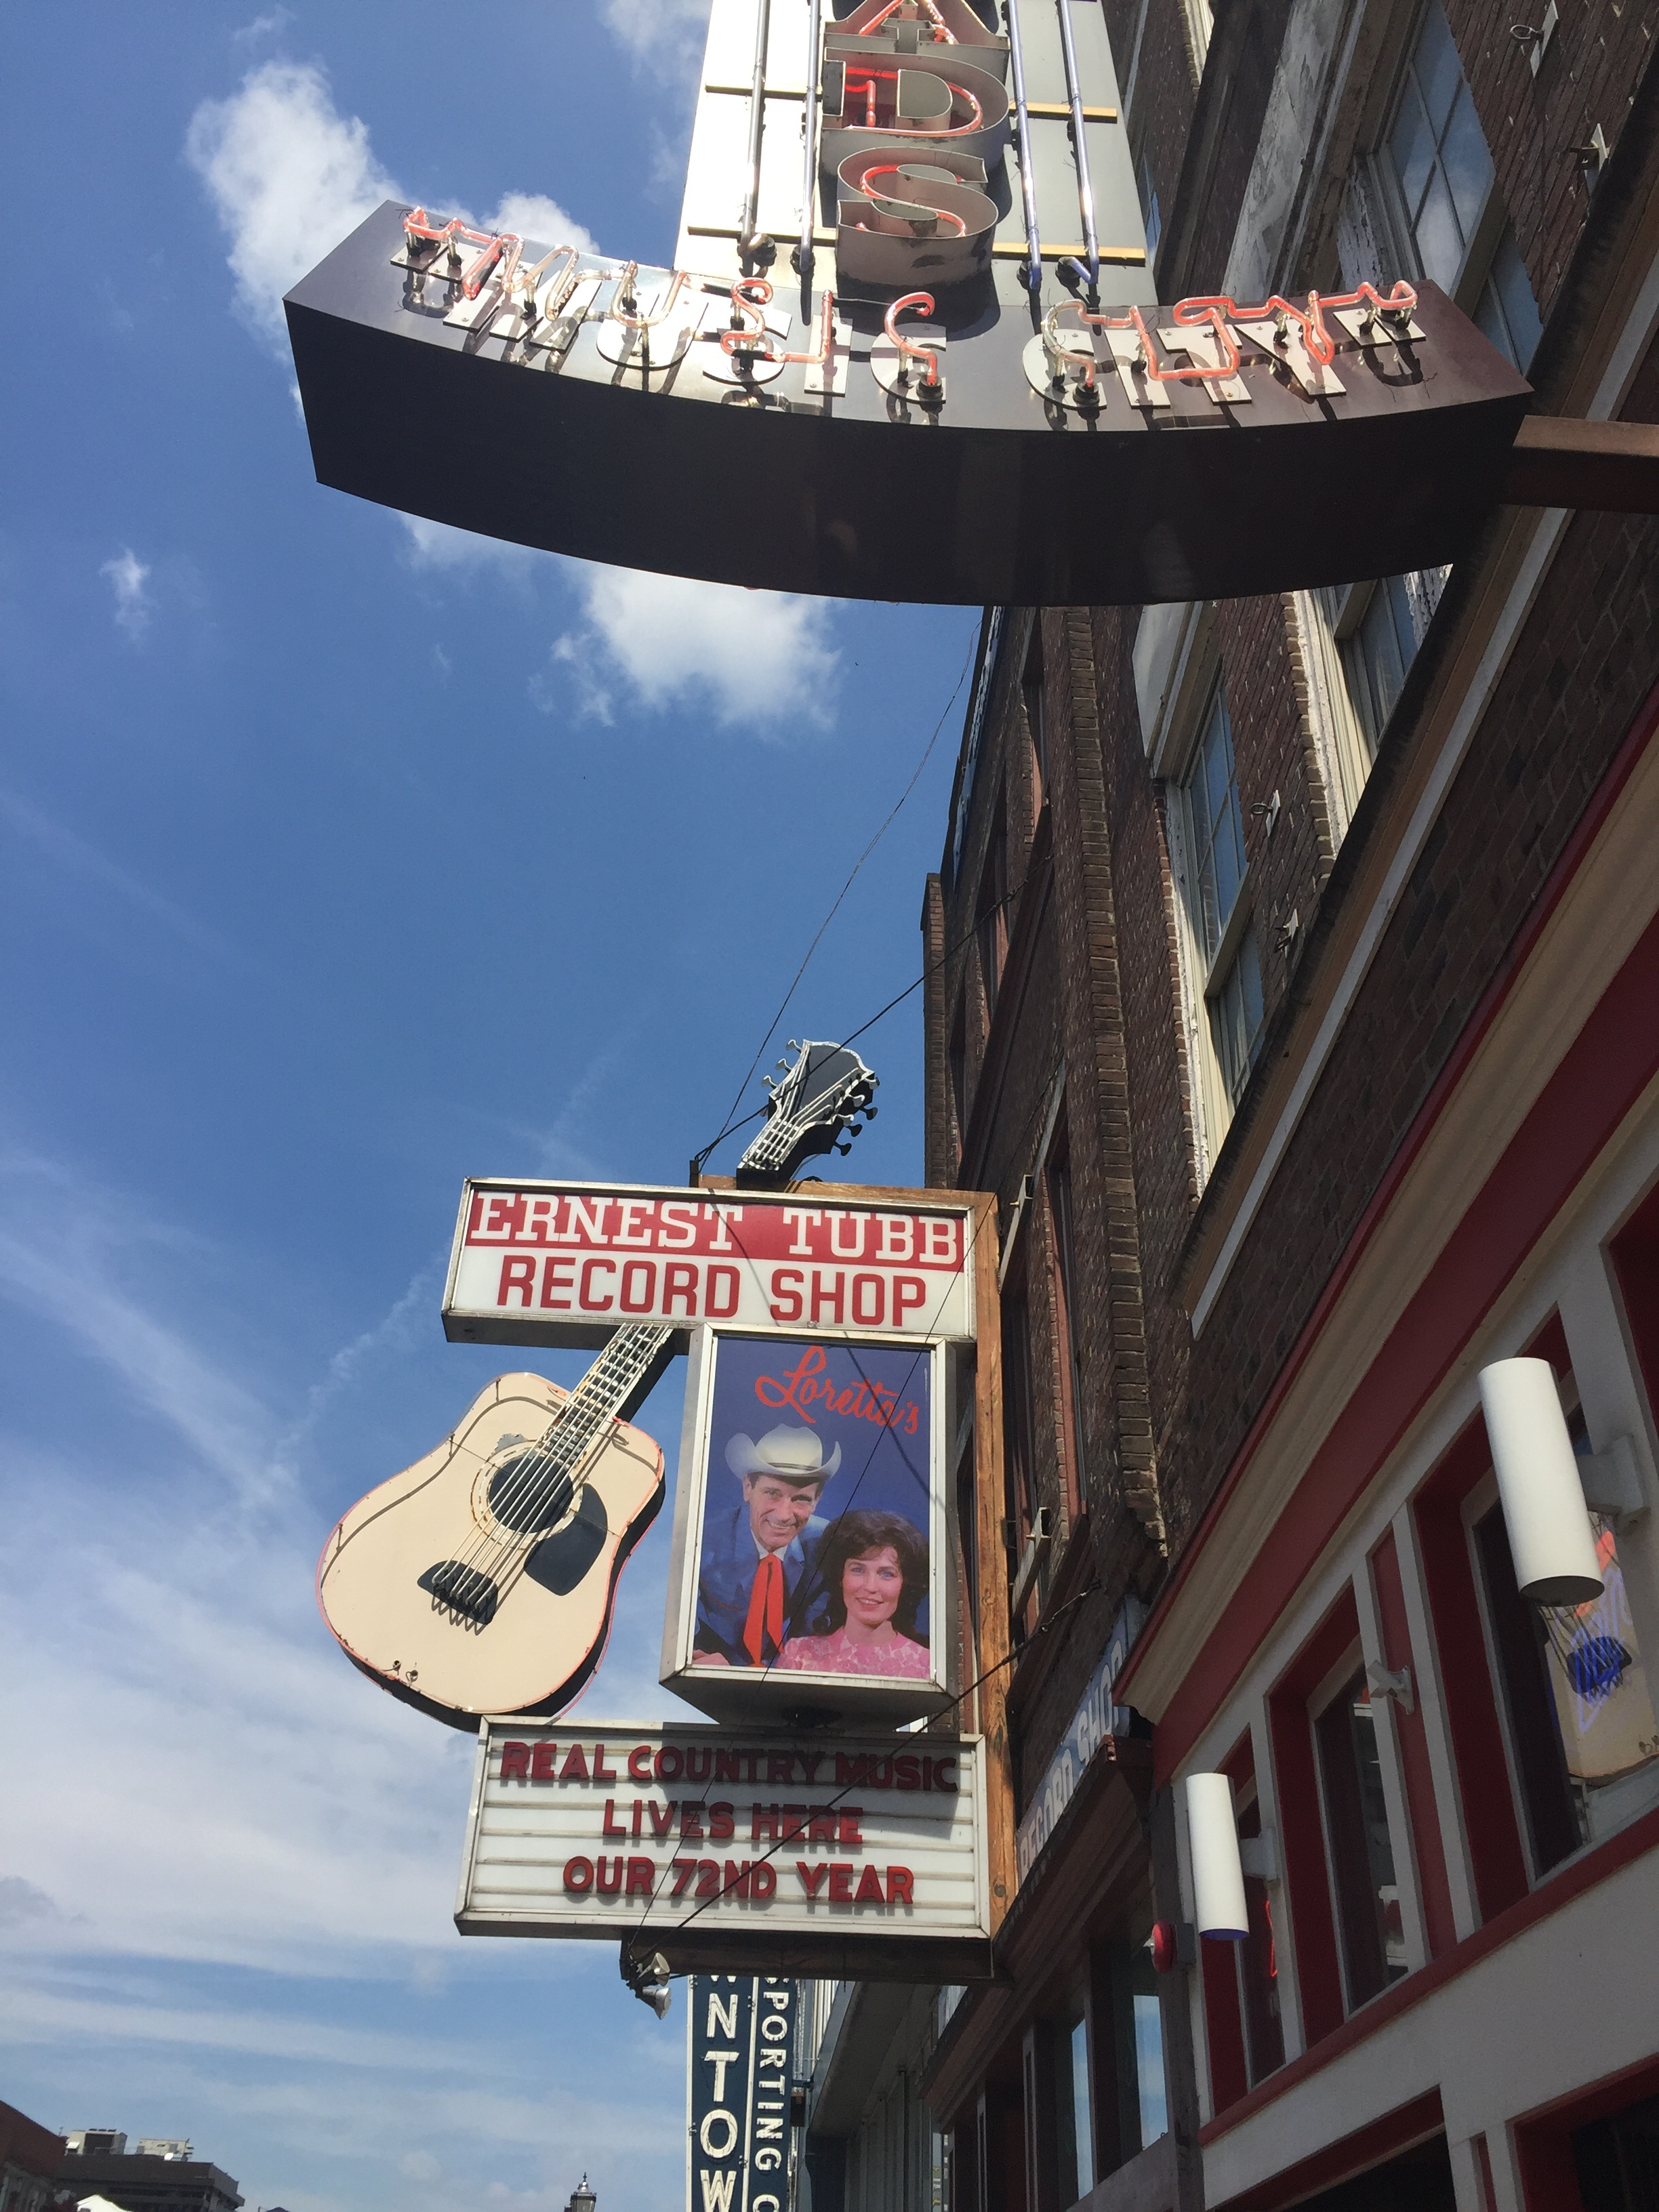 image description: One of the many old signs on the Nashvegas Strip. This one features a neon guitar and a photo of Ernest Tubb and Loretta Lynn. The sign reads: Ernest Tubb's Record Shop. Real country music lives here. Our 72nd year.""